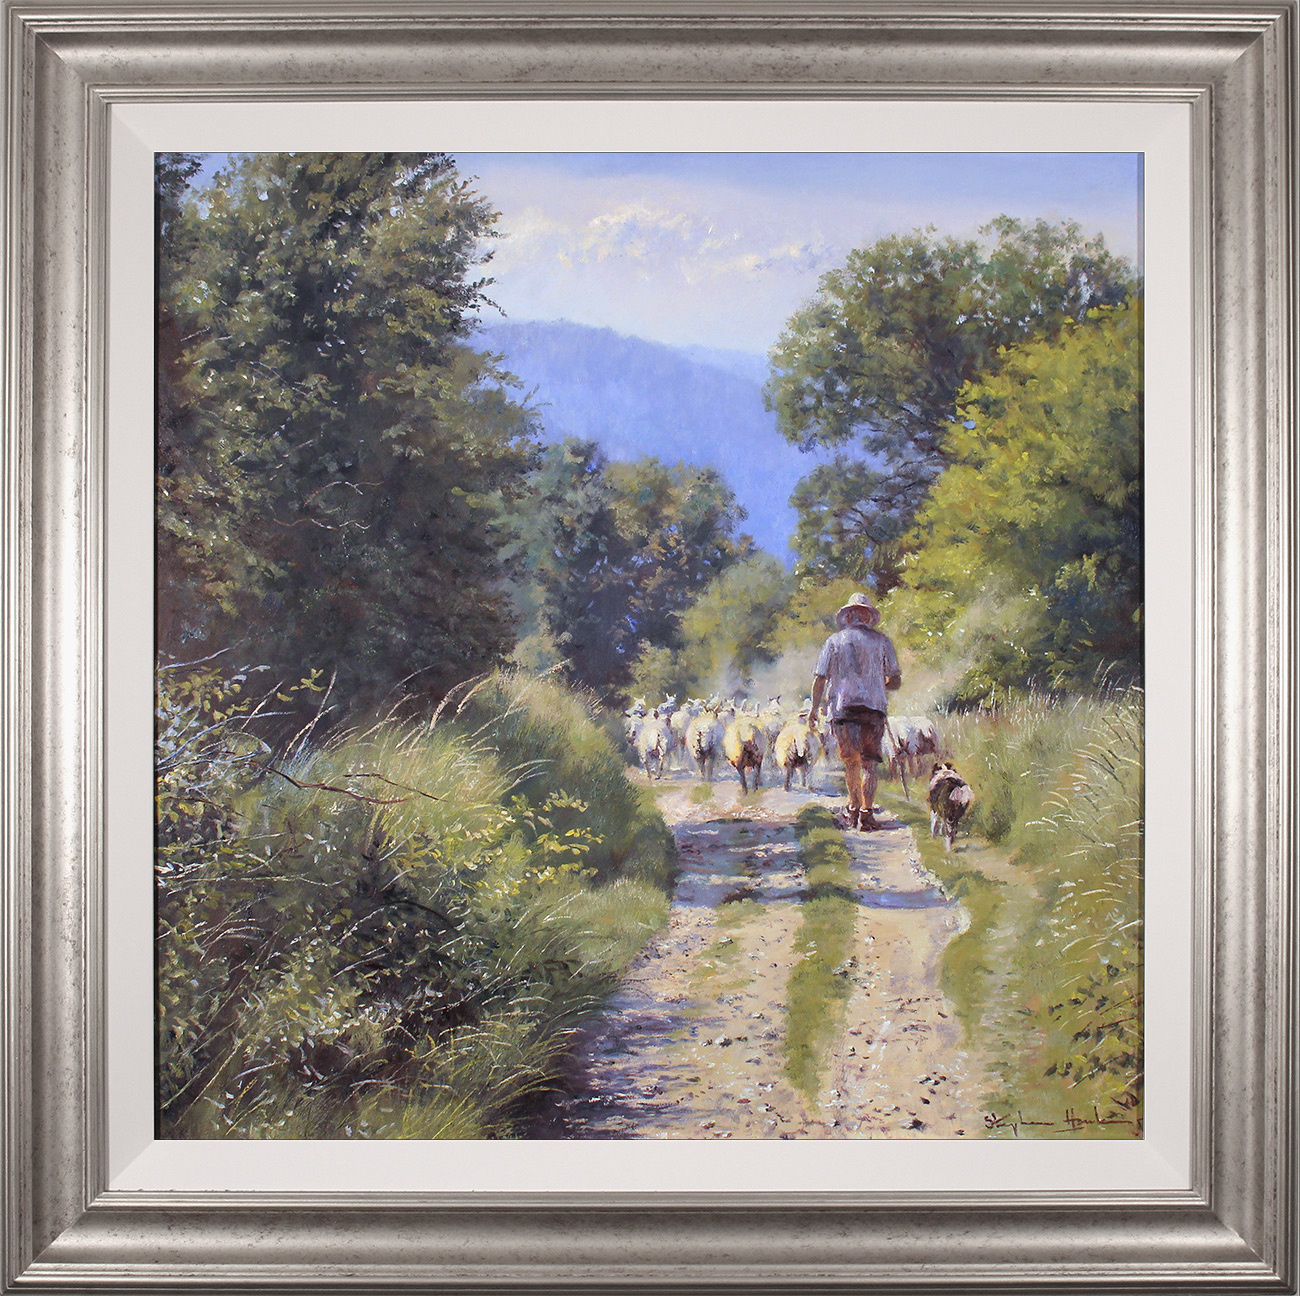 Stephen Hawkins, Original oil painting on canvas, The Summer Flock, click to enlarge